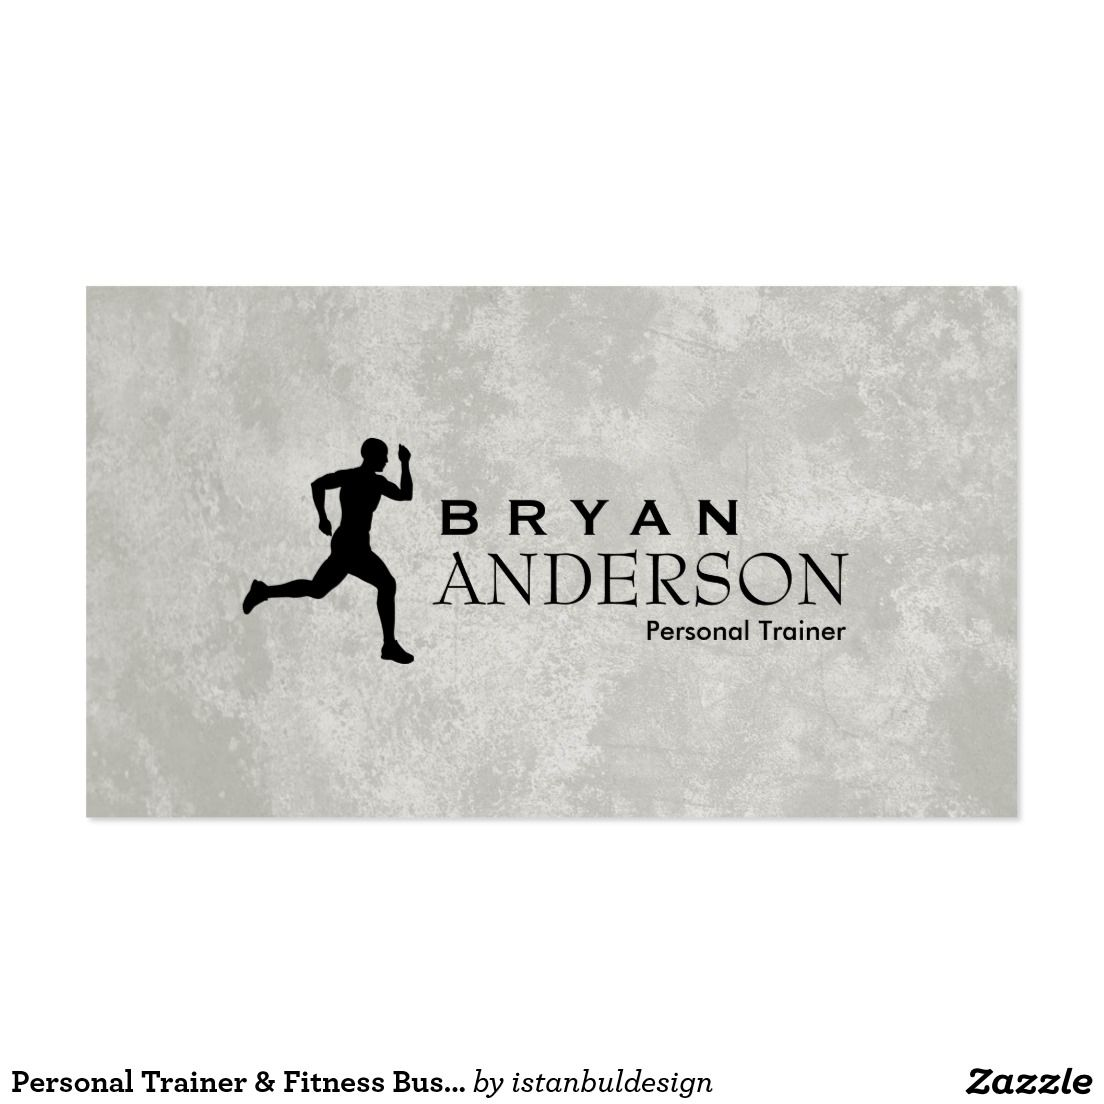 Personal Trainer & Fitness Business Card | Fitness Business Cards ...